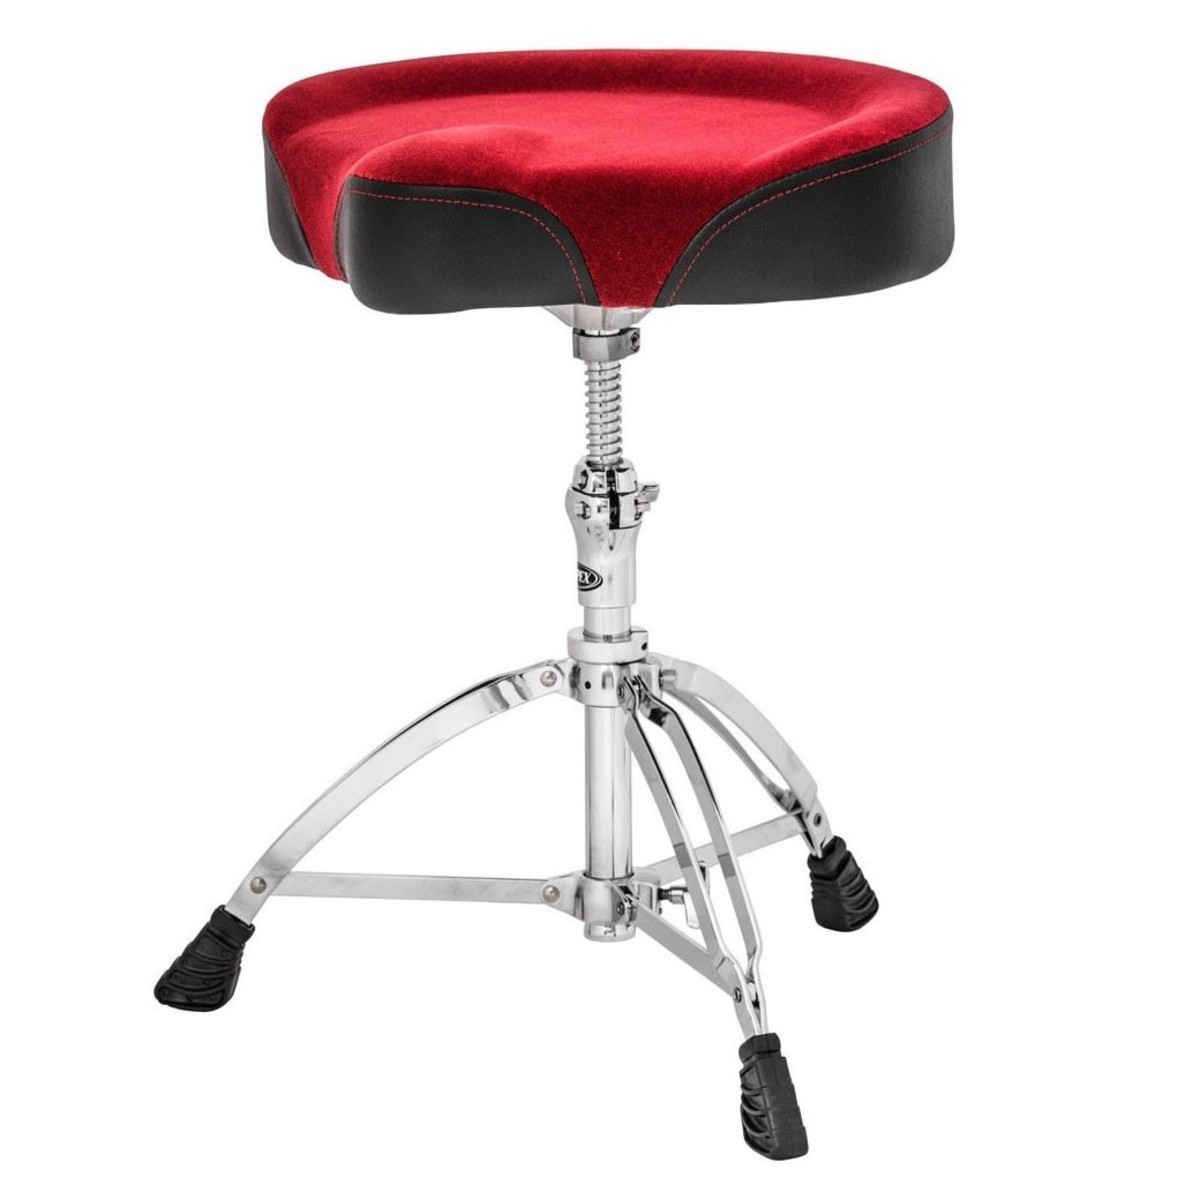 Image of Mapex T765A Drum Stool Saddle Cloth Top Threaded Base Burgundy